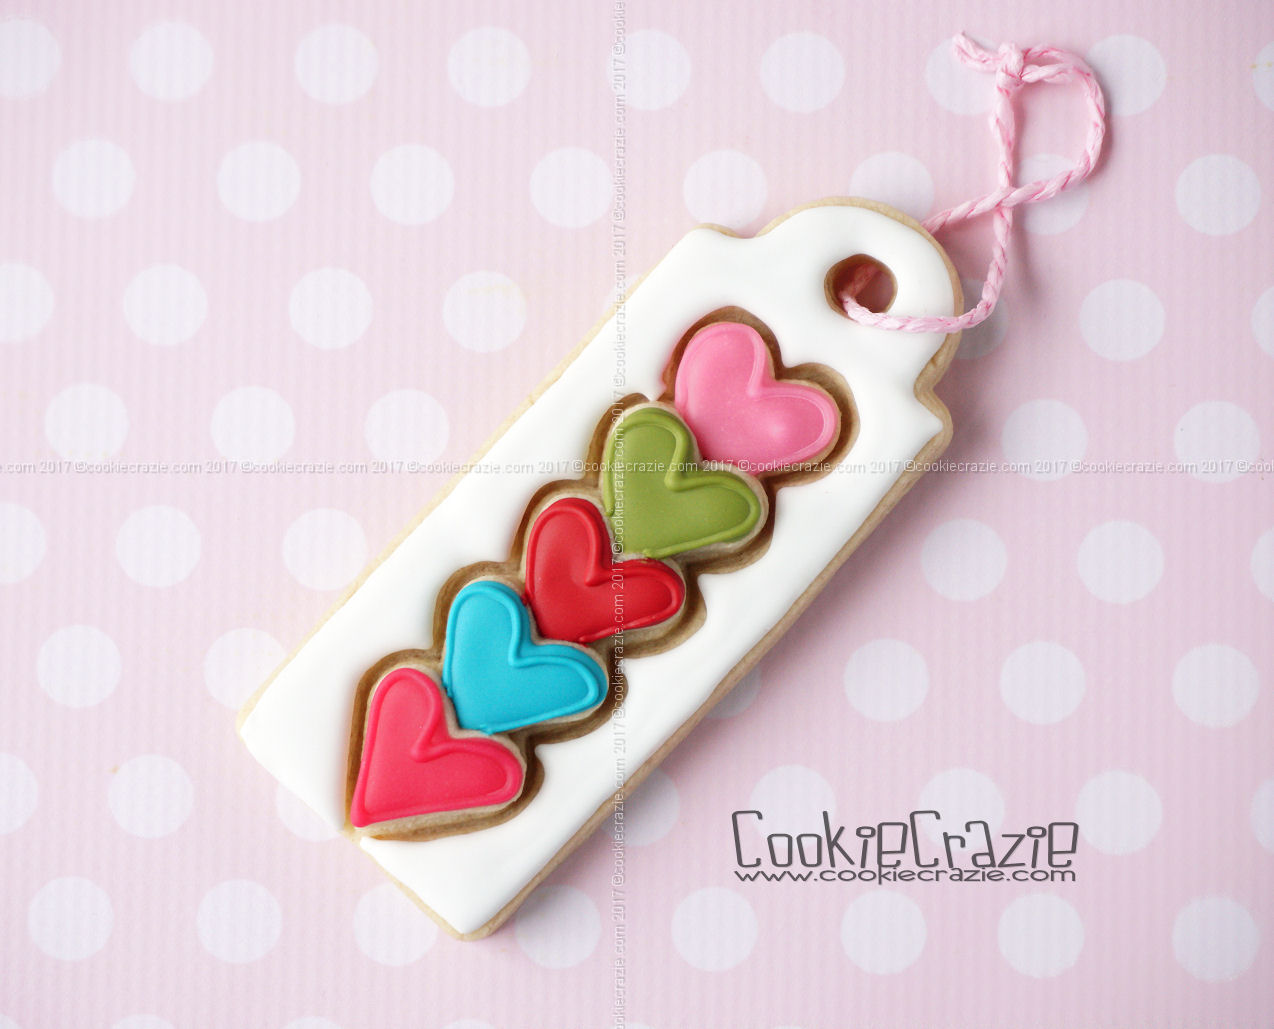 Stacked Hearts Valentines Gift Tag Decorated Cookie YouTube video  HERE